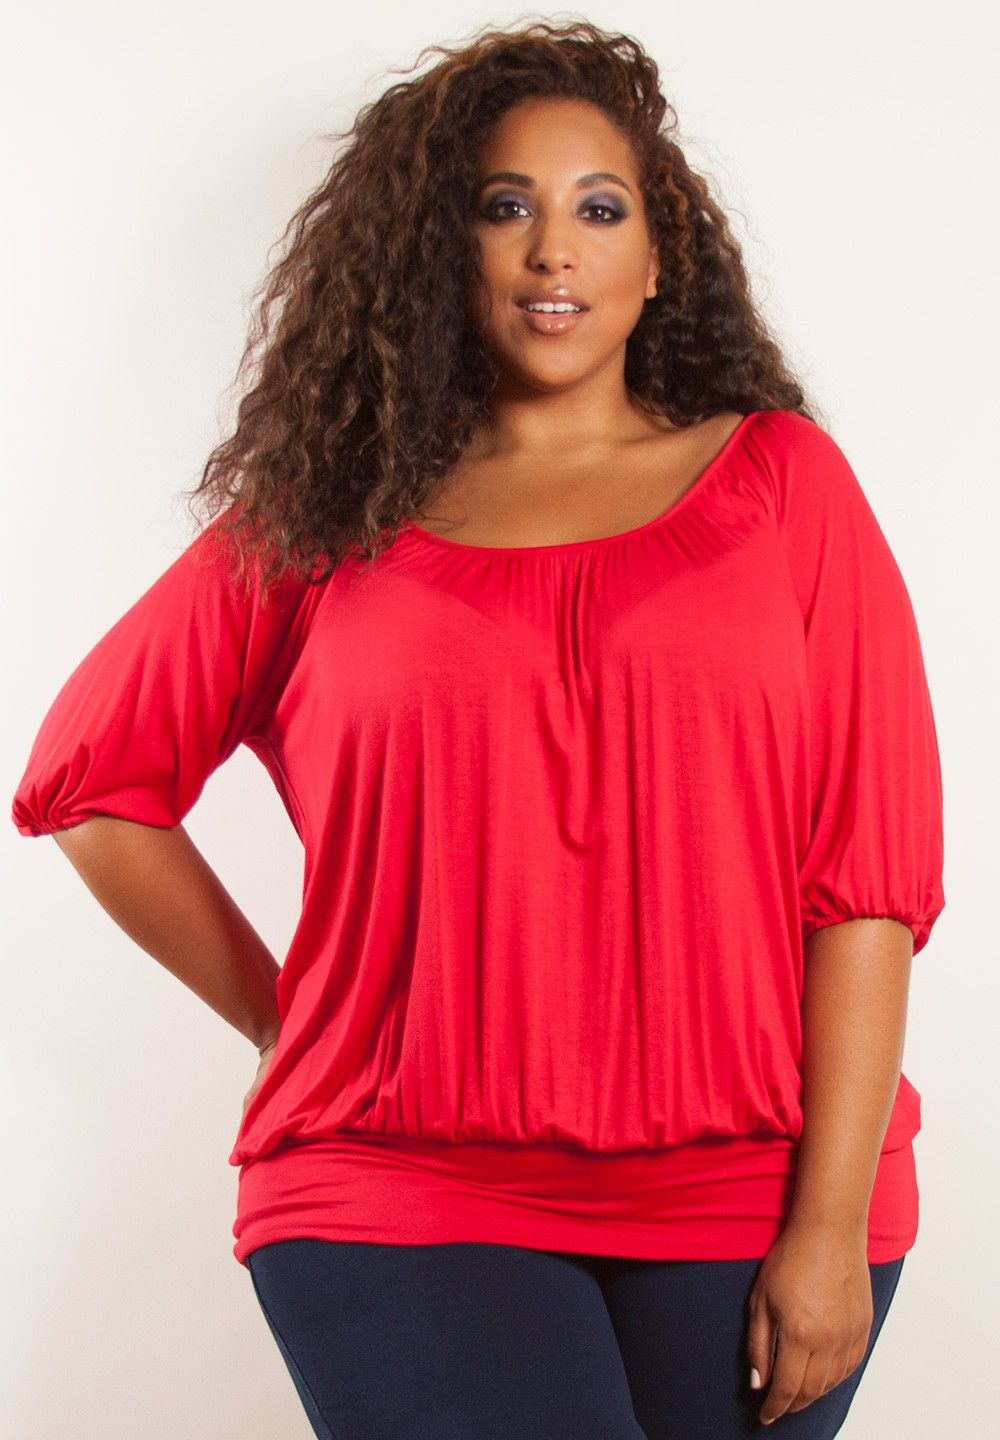 bbbe8cc0ba plus-size-fashion red 4 Tops Tamanhos Maiores